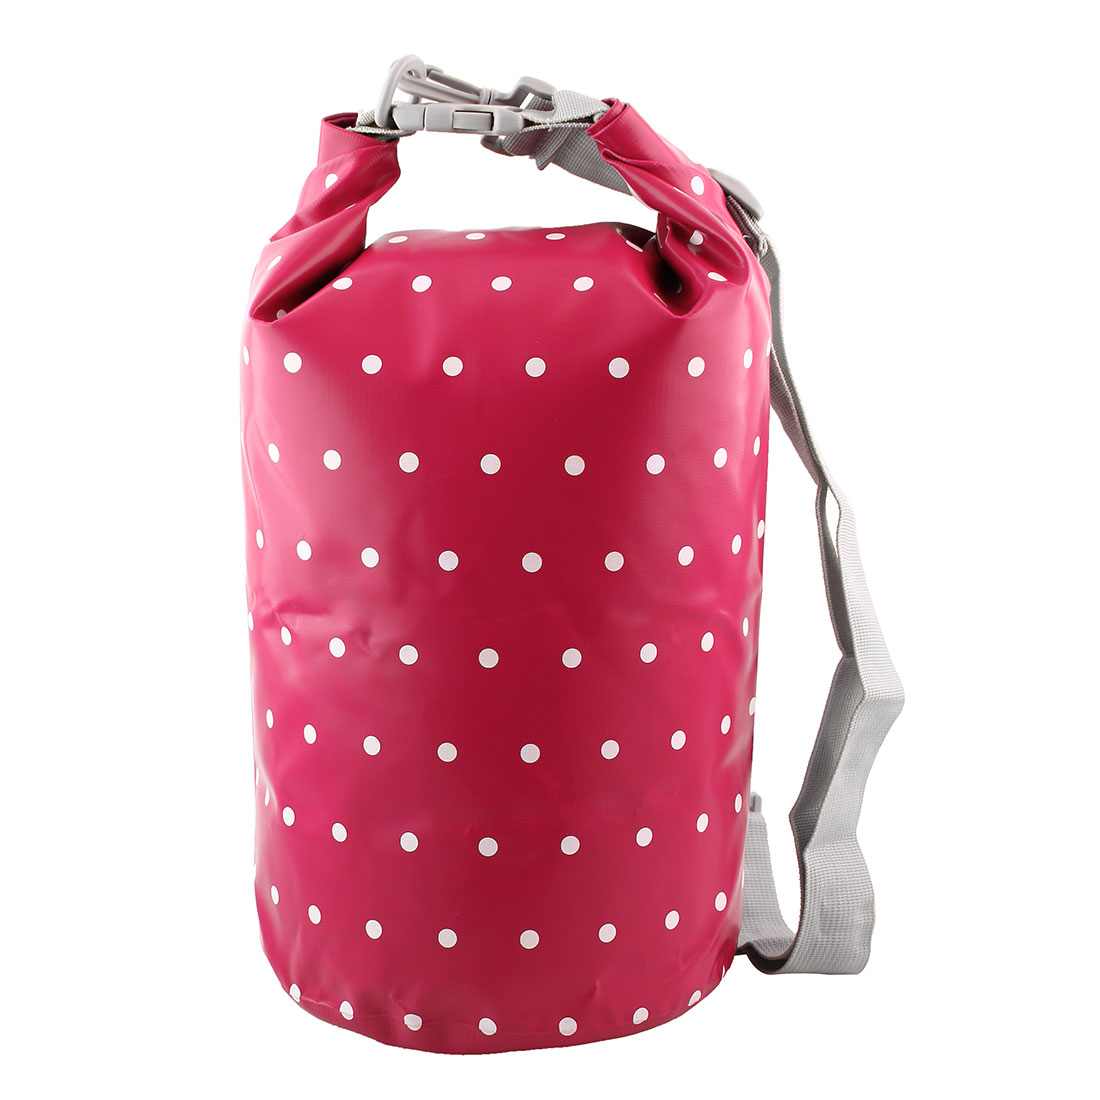 SAFEBET Authorized Water Resistant Bag Dry Sack Pink 10L for Rafting  Camping - Walmart.com 9052c36ad8cb2